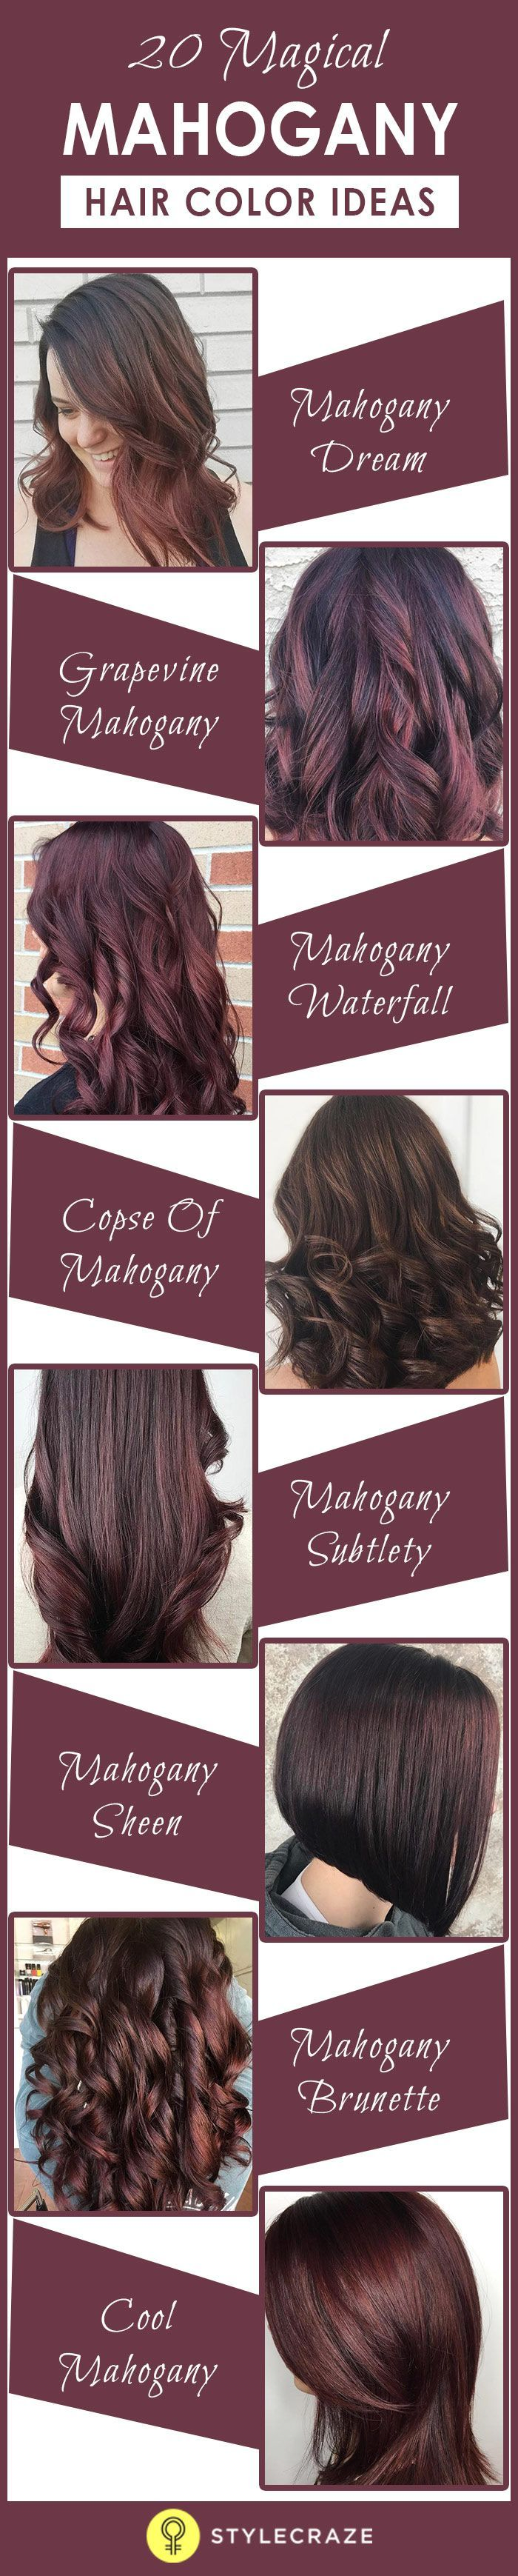 Mahogany the word itself sounds opulent luxurious exotic this